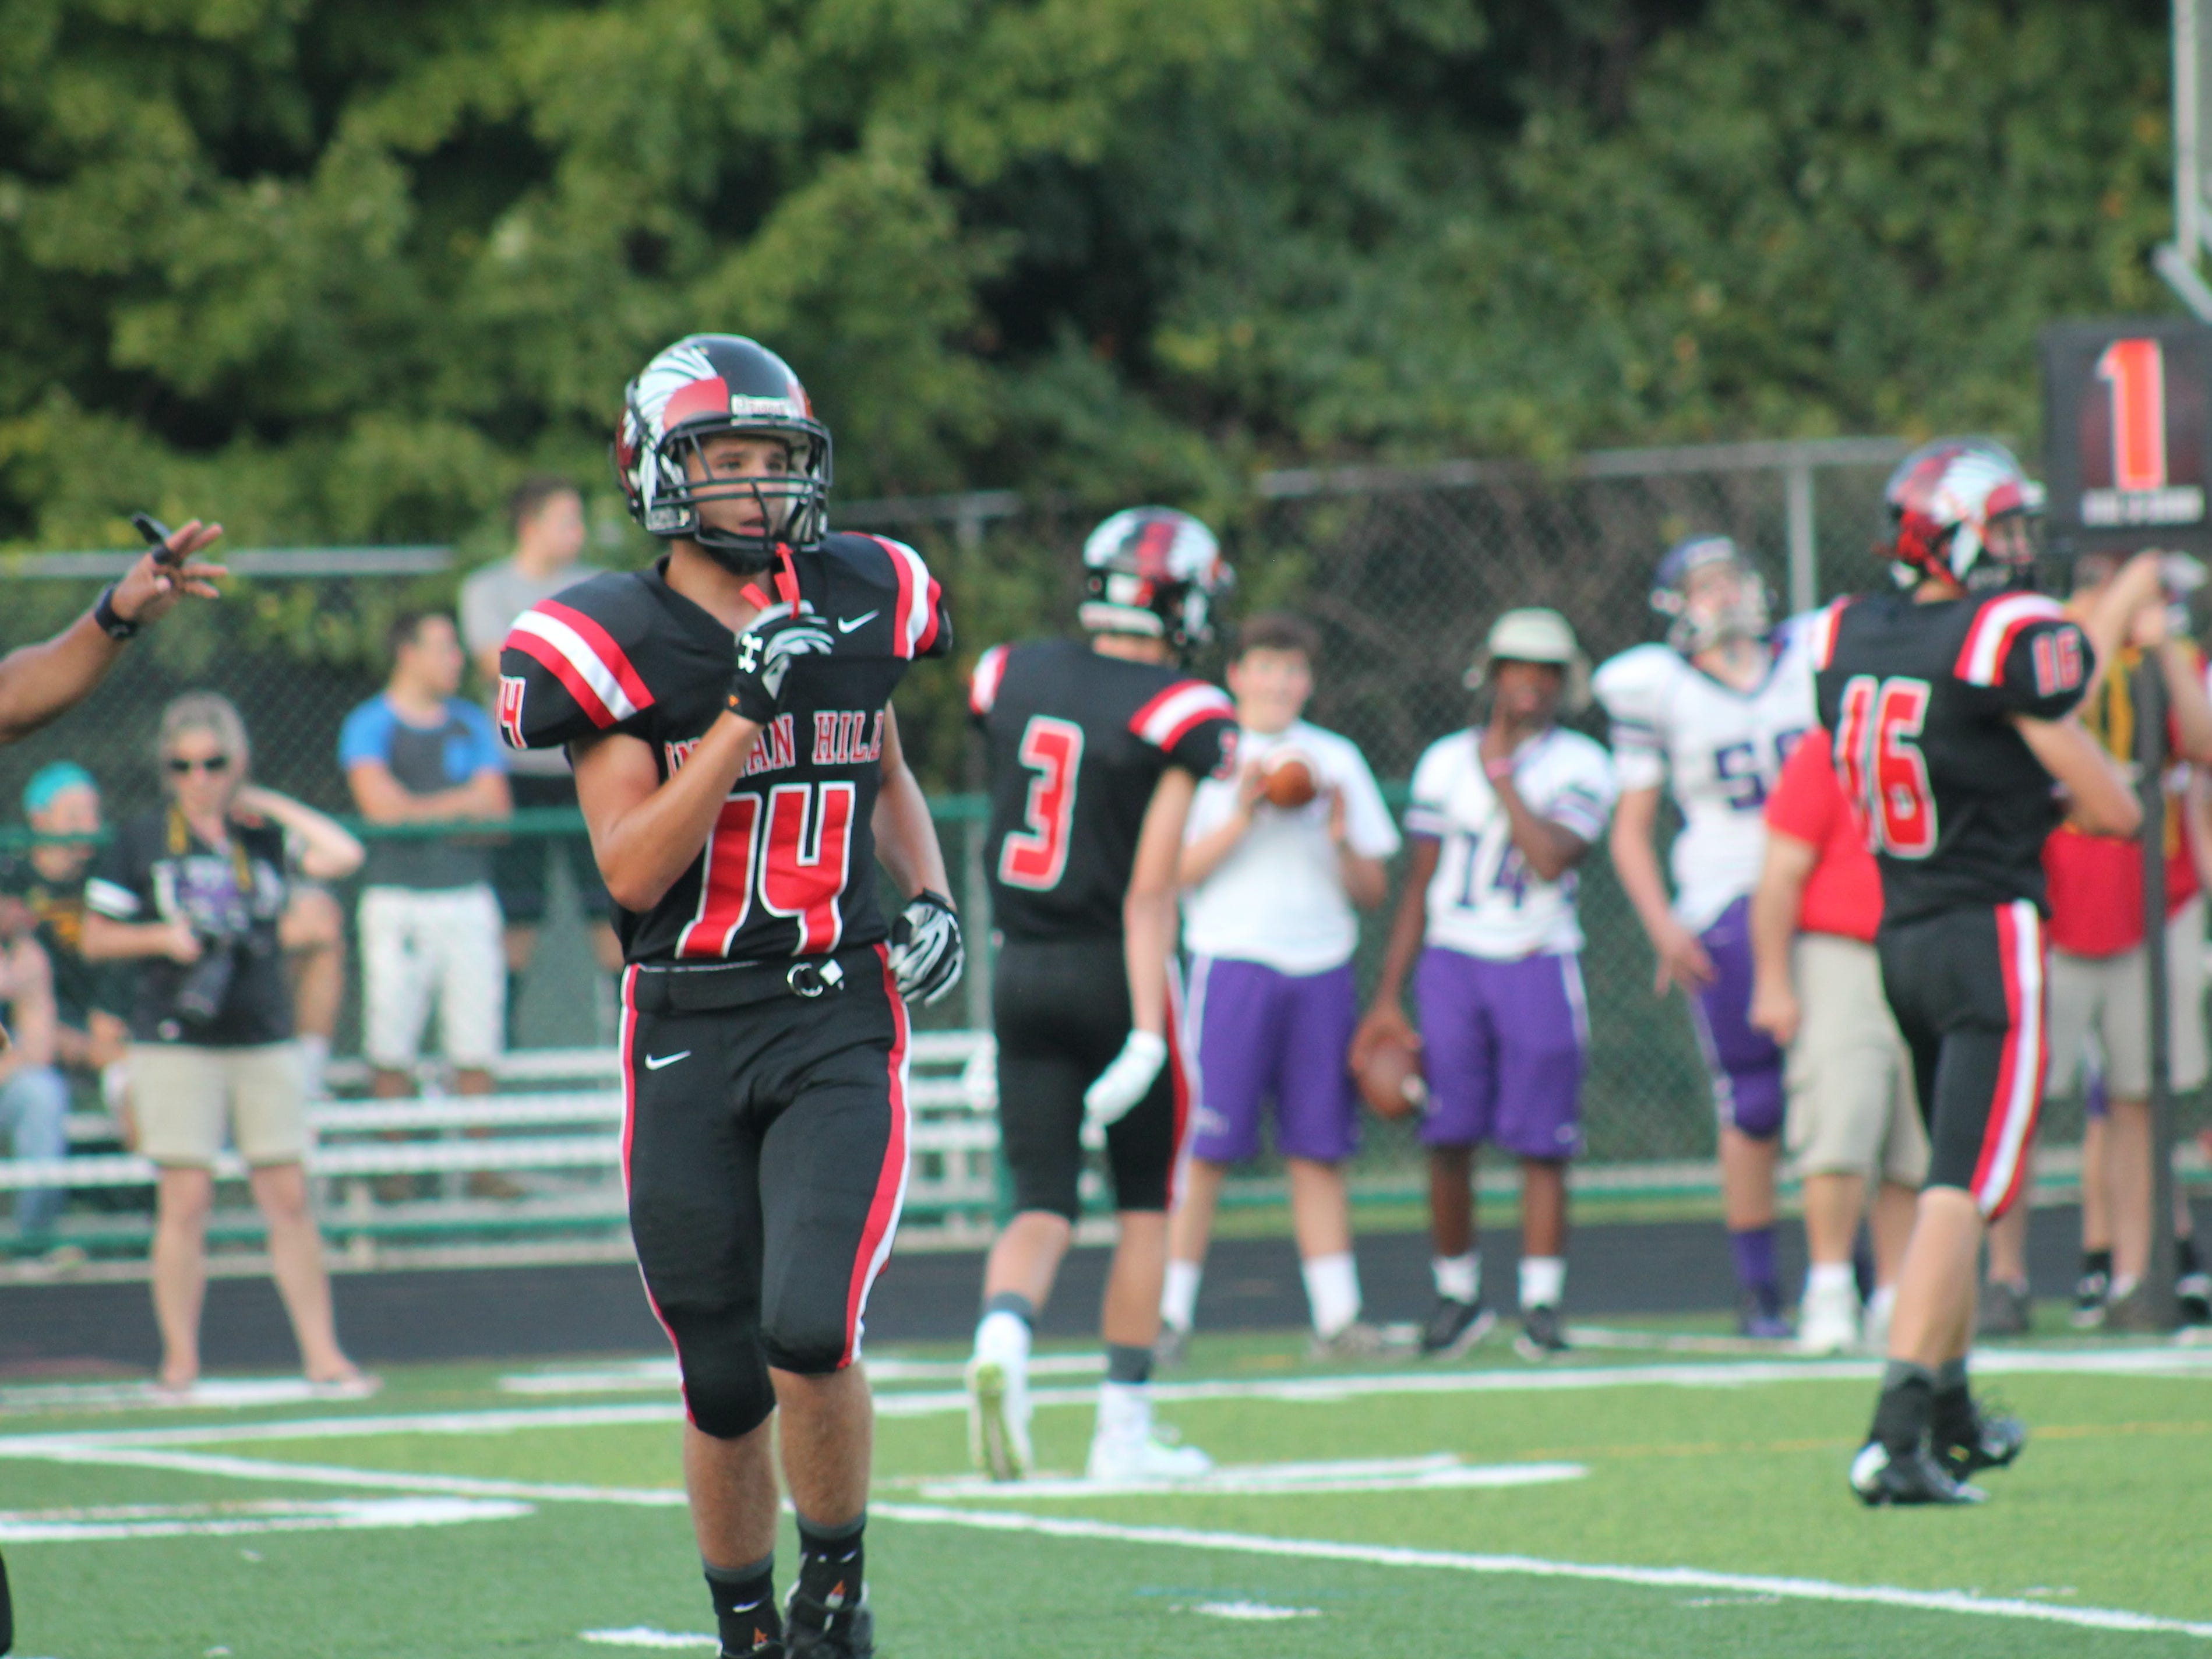 Marco Fiore is one of Indian Hill's freshman starters as he mans the safety position for the Braves.